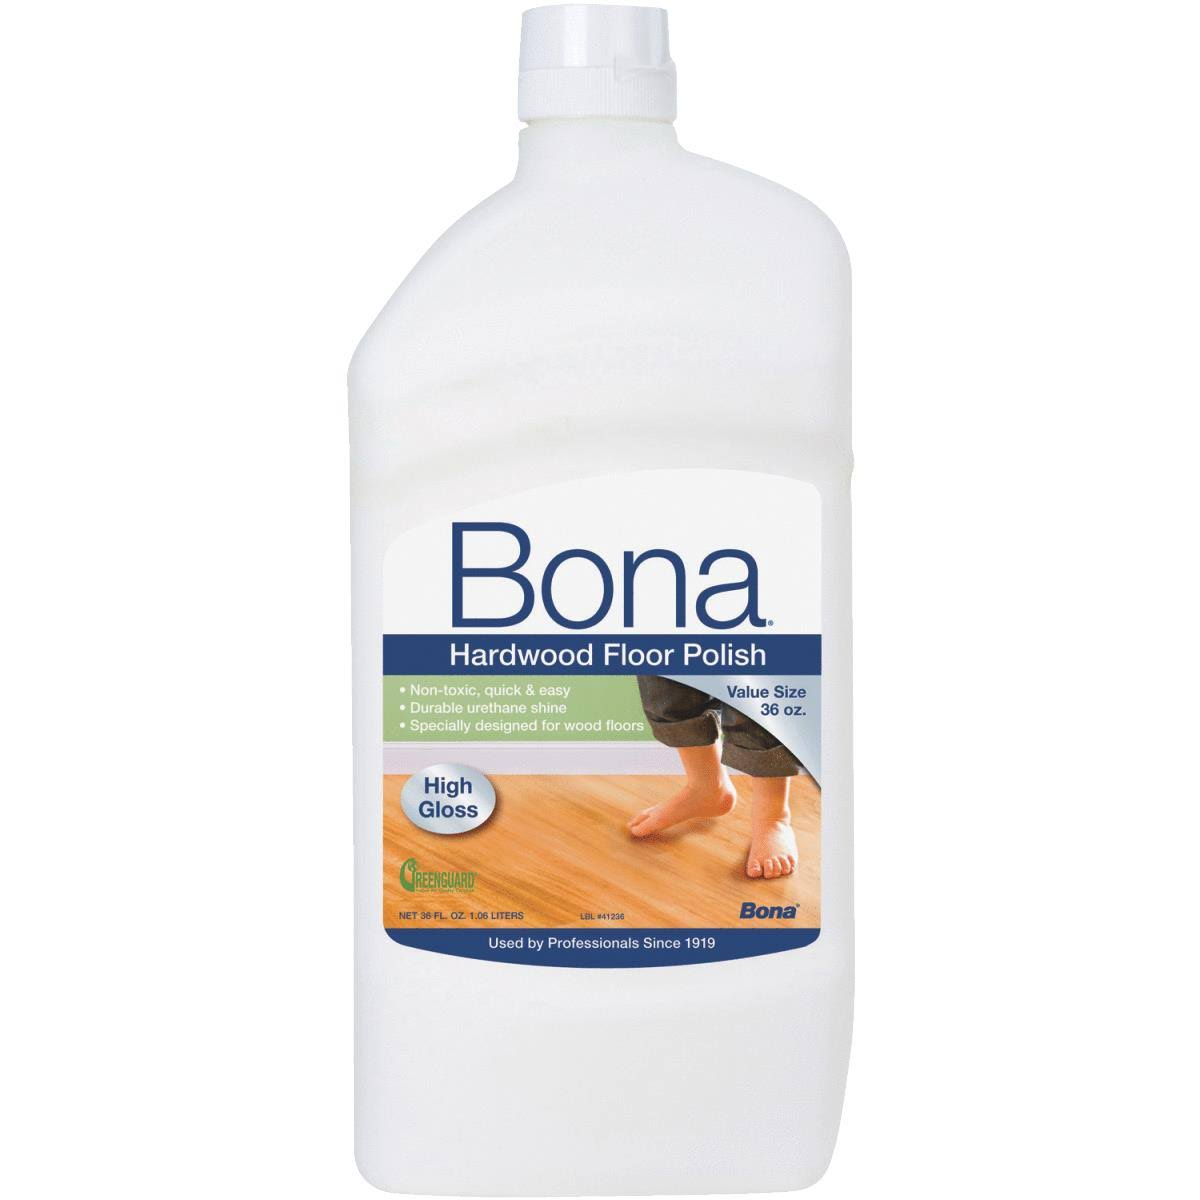 Bona High Gloss Hardwood Floor Polish - 36oz